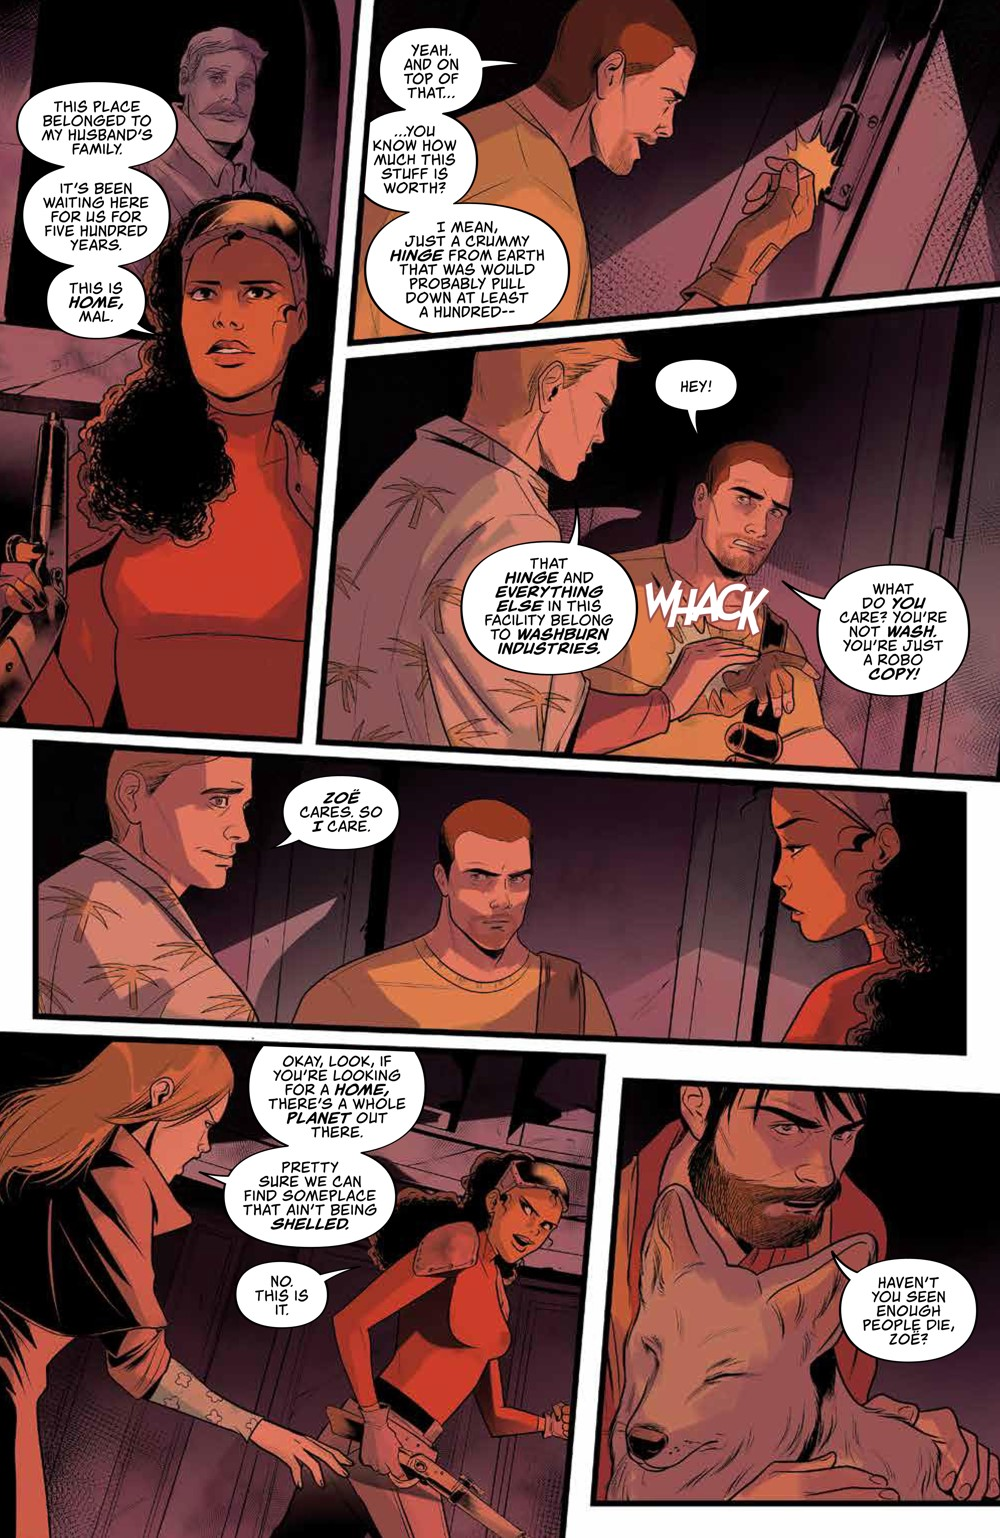 Firefly_030_PRESS_5 ComicList Previews: FIREFLY #30